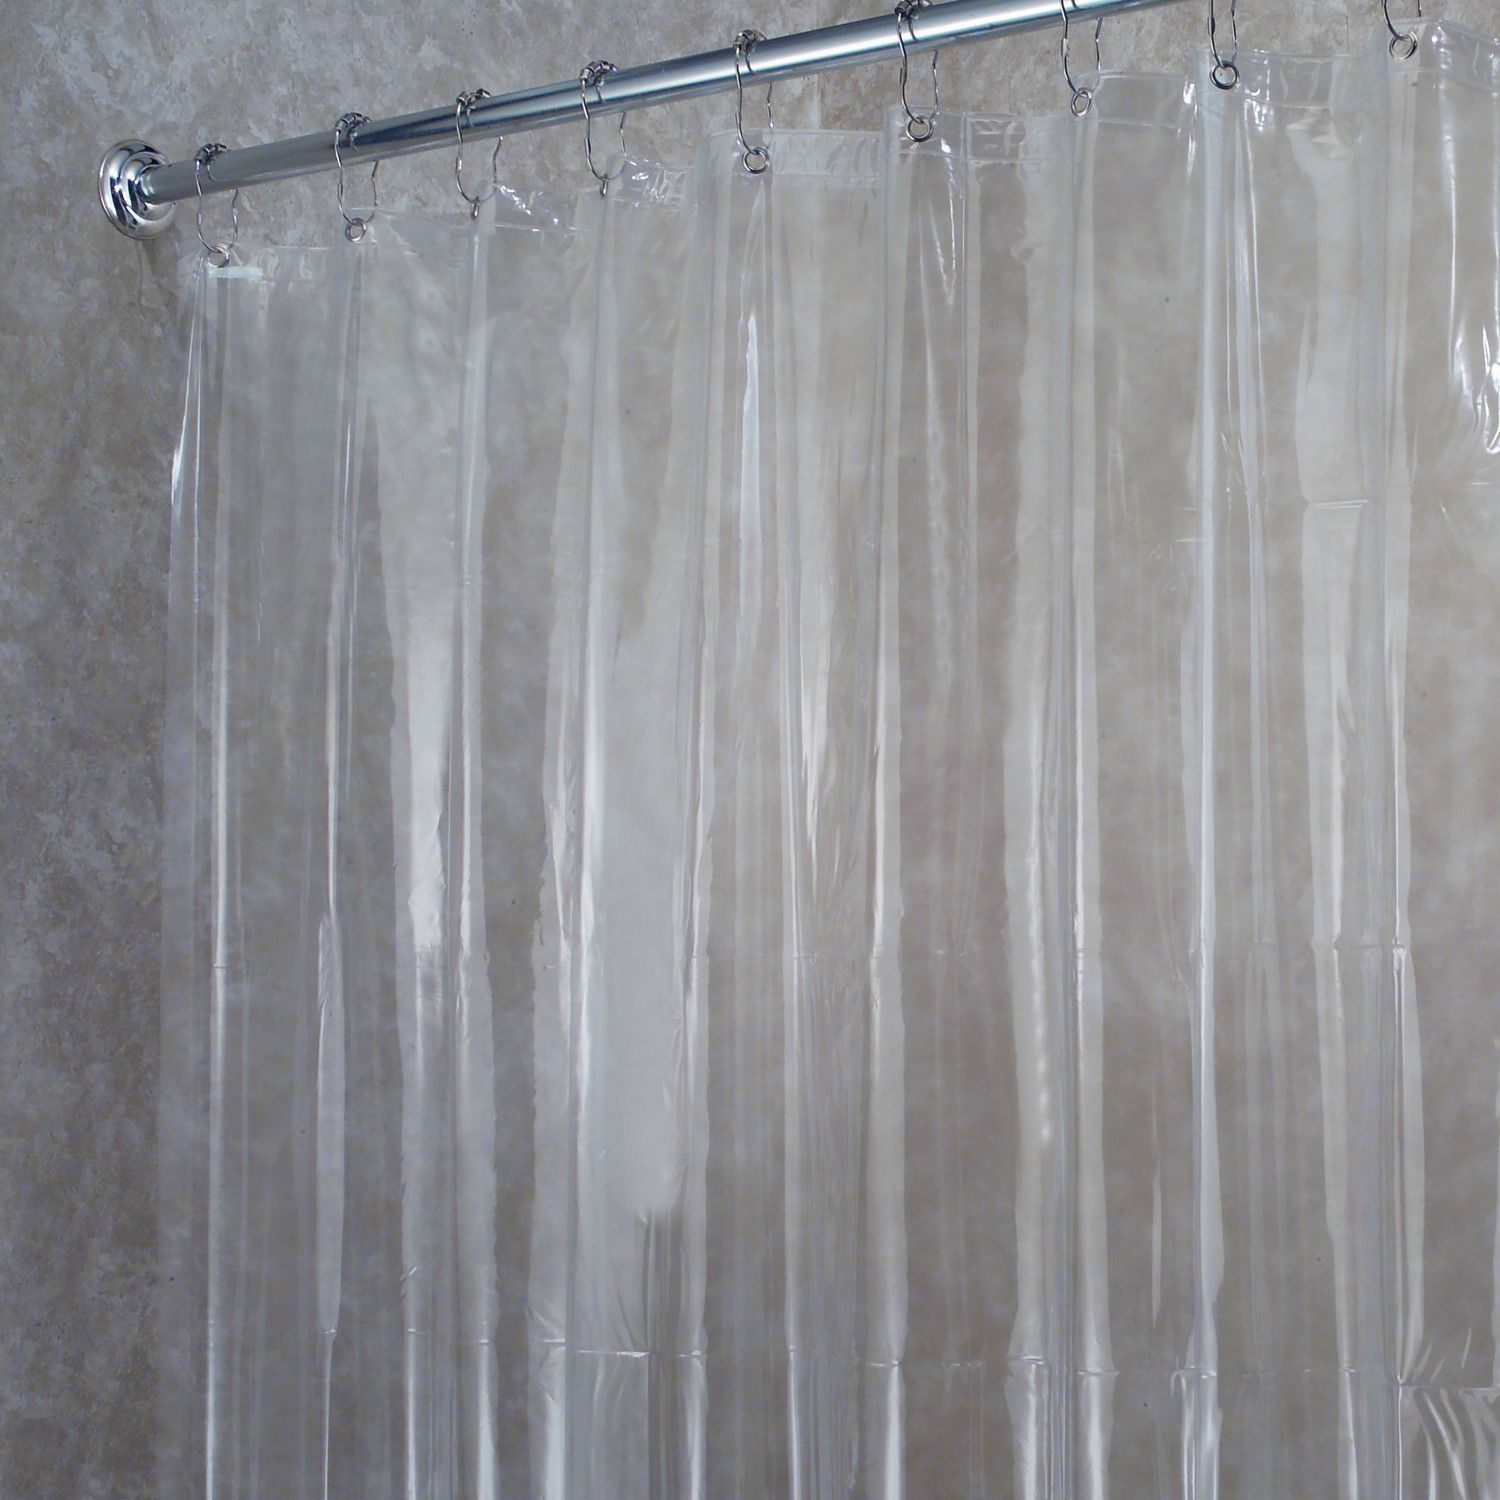 Premium weight jumbo long vinyl shower curtain liner with metal